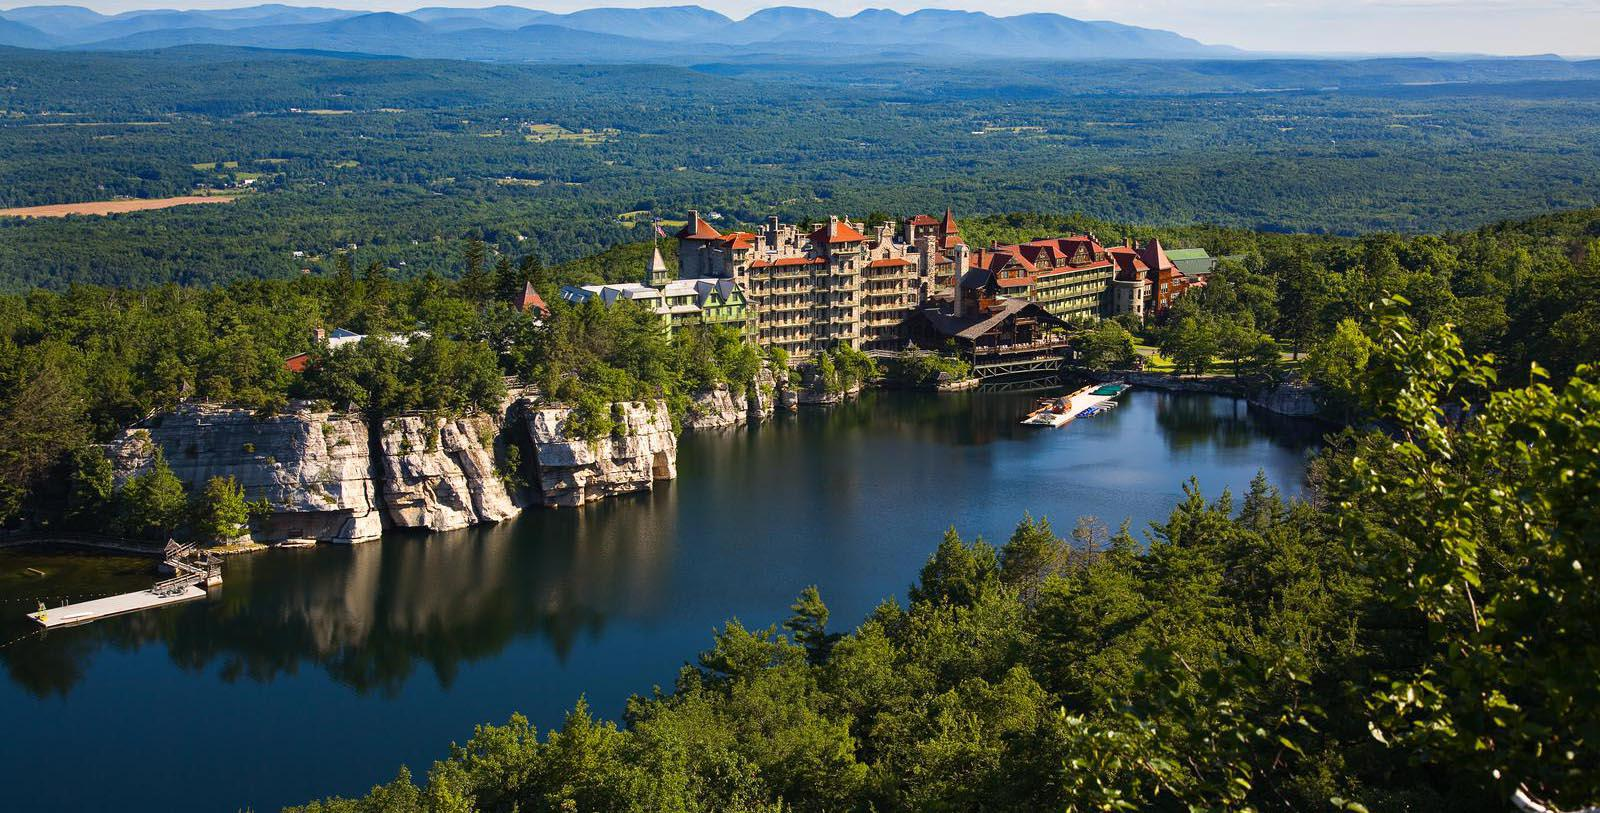 Image Hotel Exterior & Landscape, Mohonk Mountain House, New Paltz, New York, 1869, Member of Historic Hotels of America, Overview